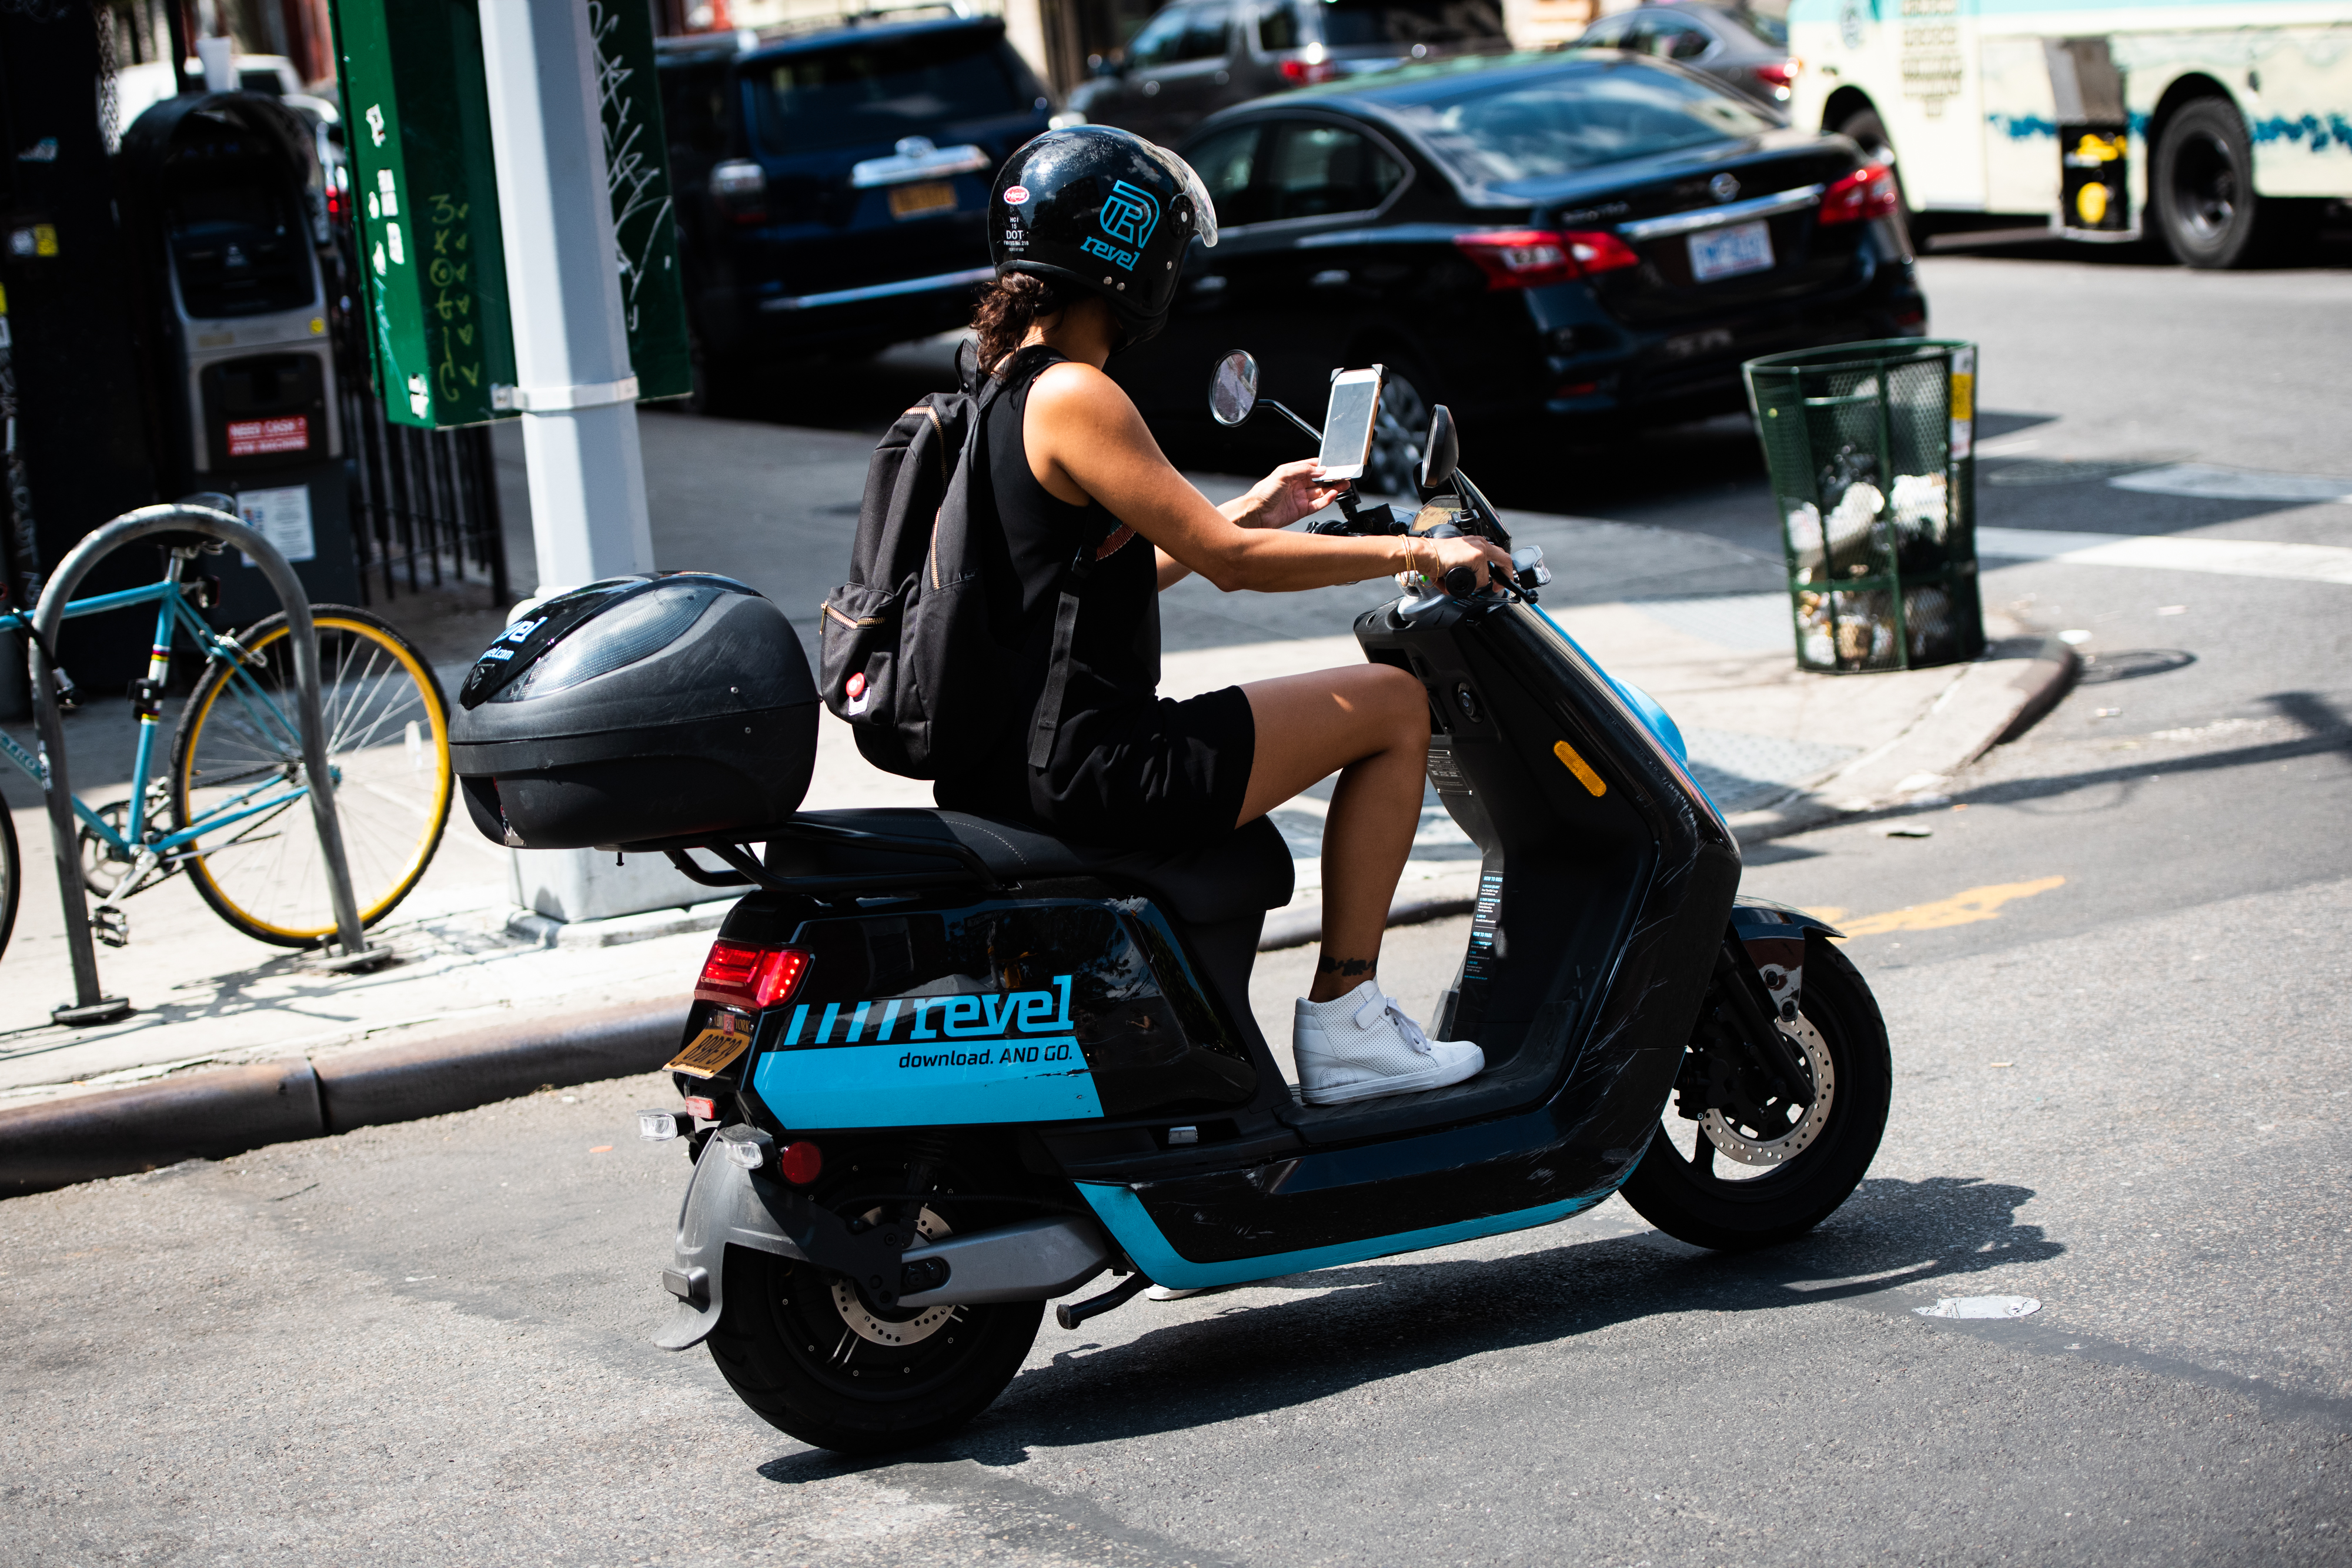 First bikes, then scooters, now mopeds  Next up: Trikes and e-cargo